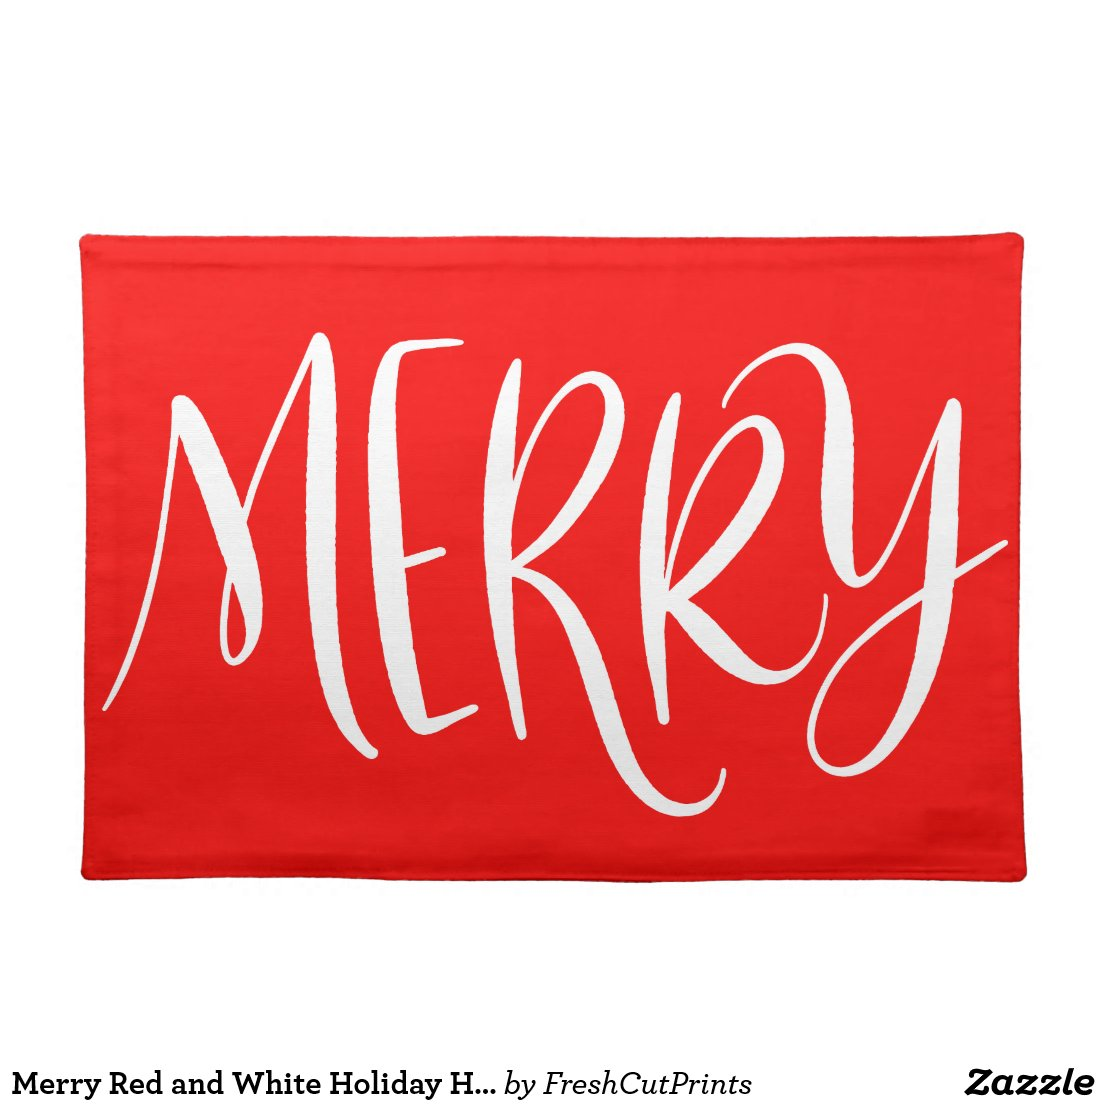 Merry Red and White Holiday Hand Lettered Cloth Placemat